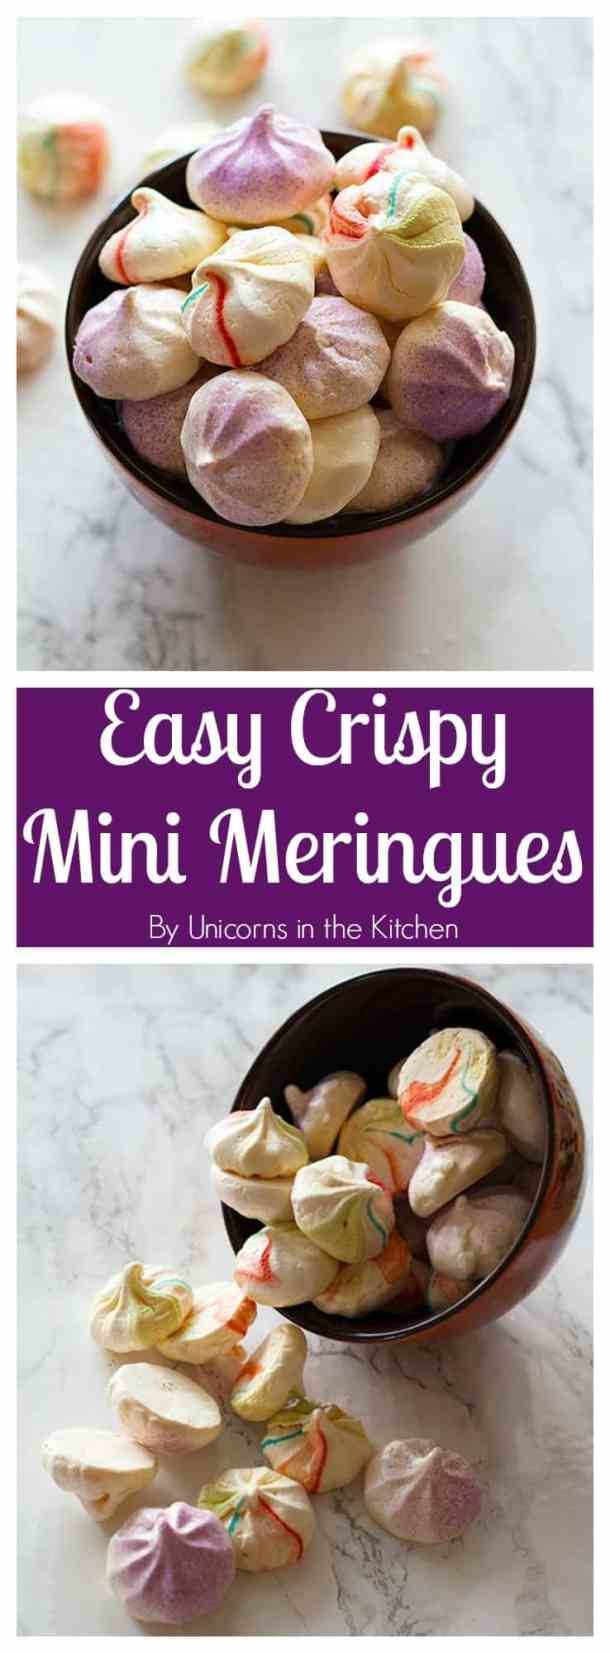 These Easy Crispy Mini Meringues are indeed easy! Just follow a few tips and you will have delicious and crispy meringues all the time!